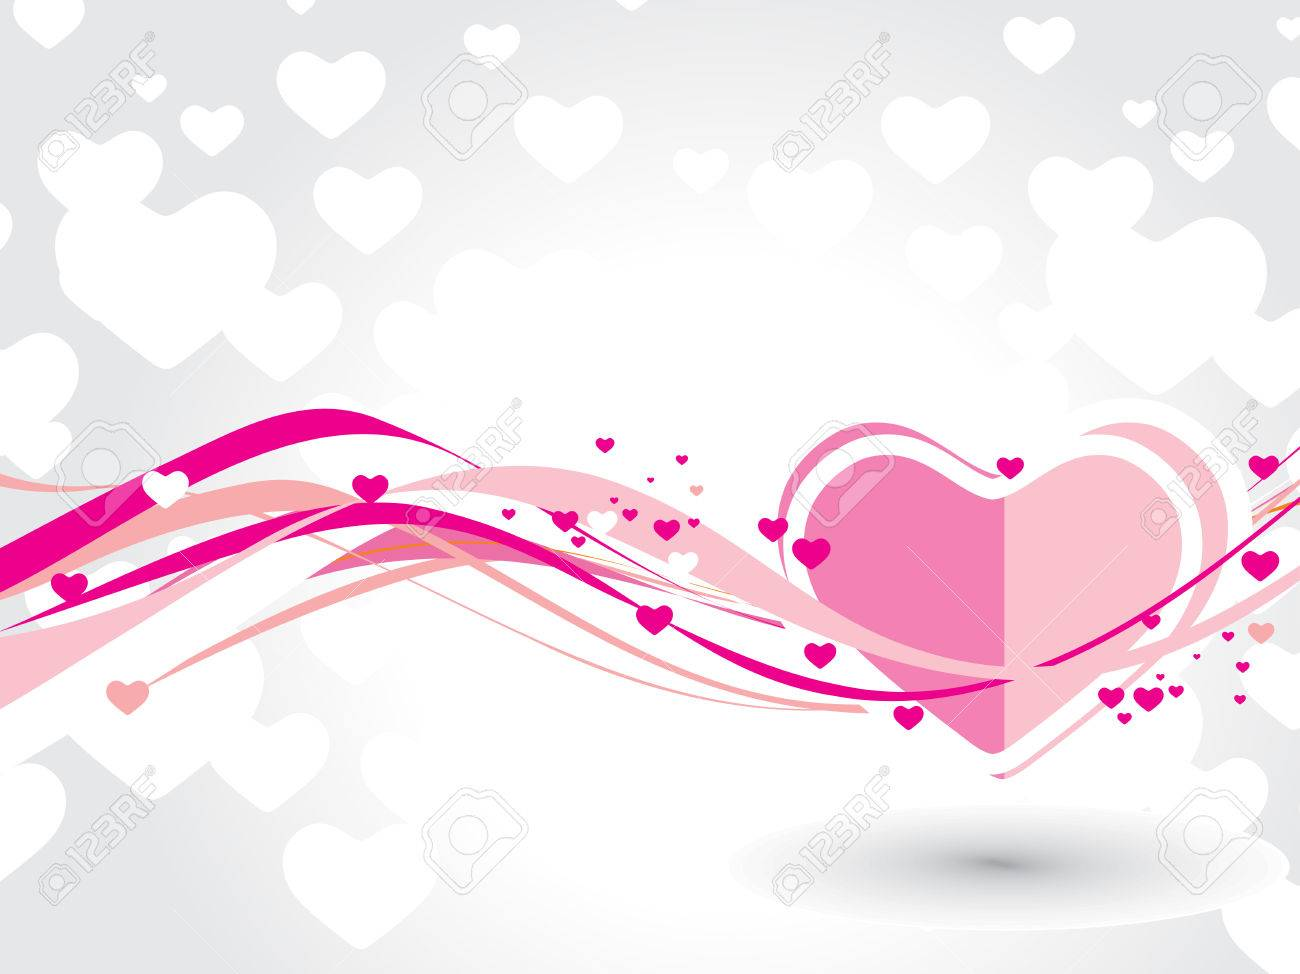 Abstract valentine's day card with wave heart line background,  illustration Stock Vector - 6379195